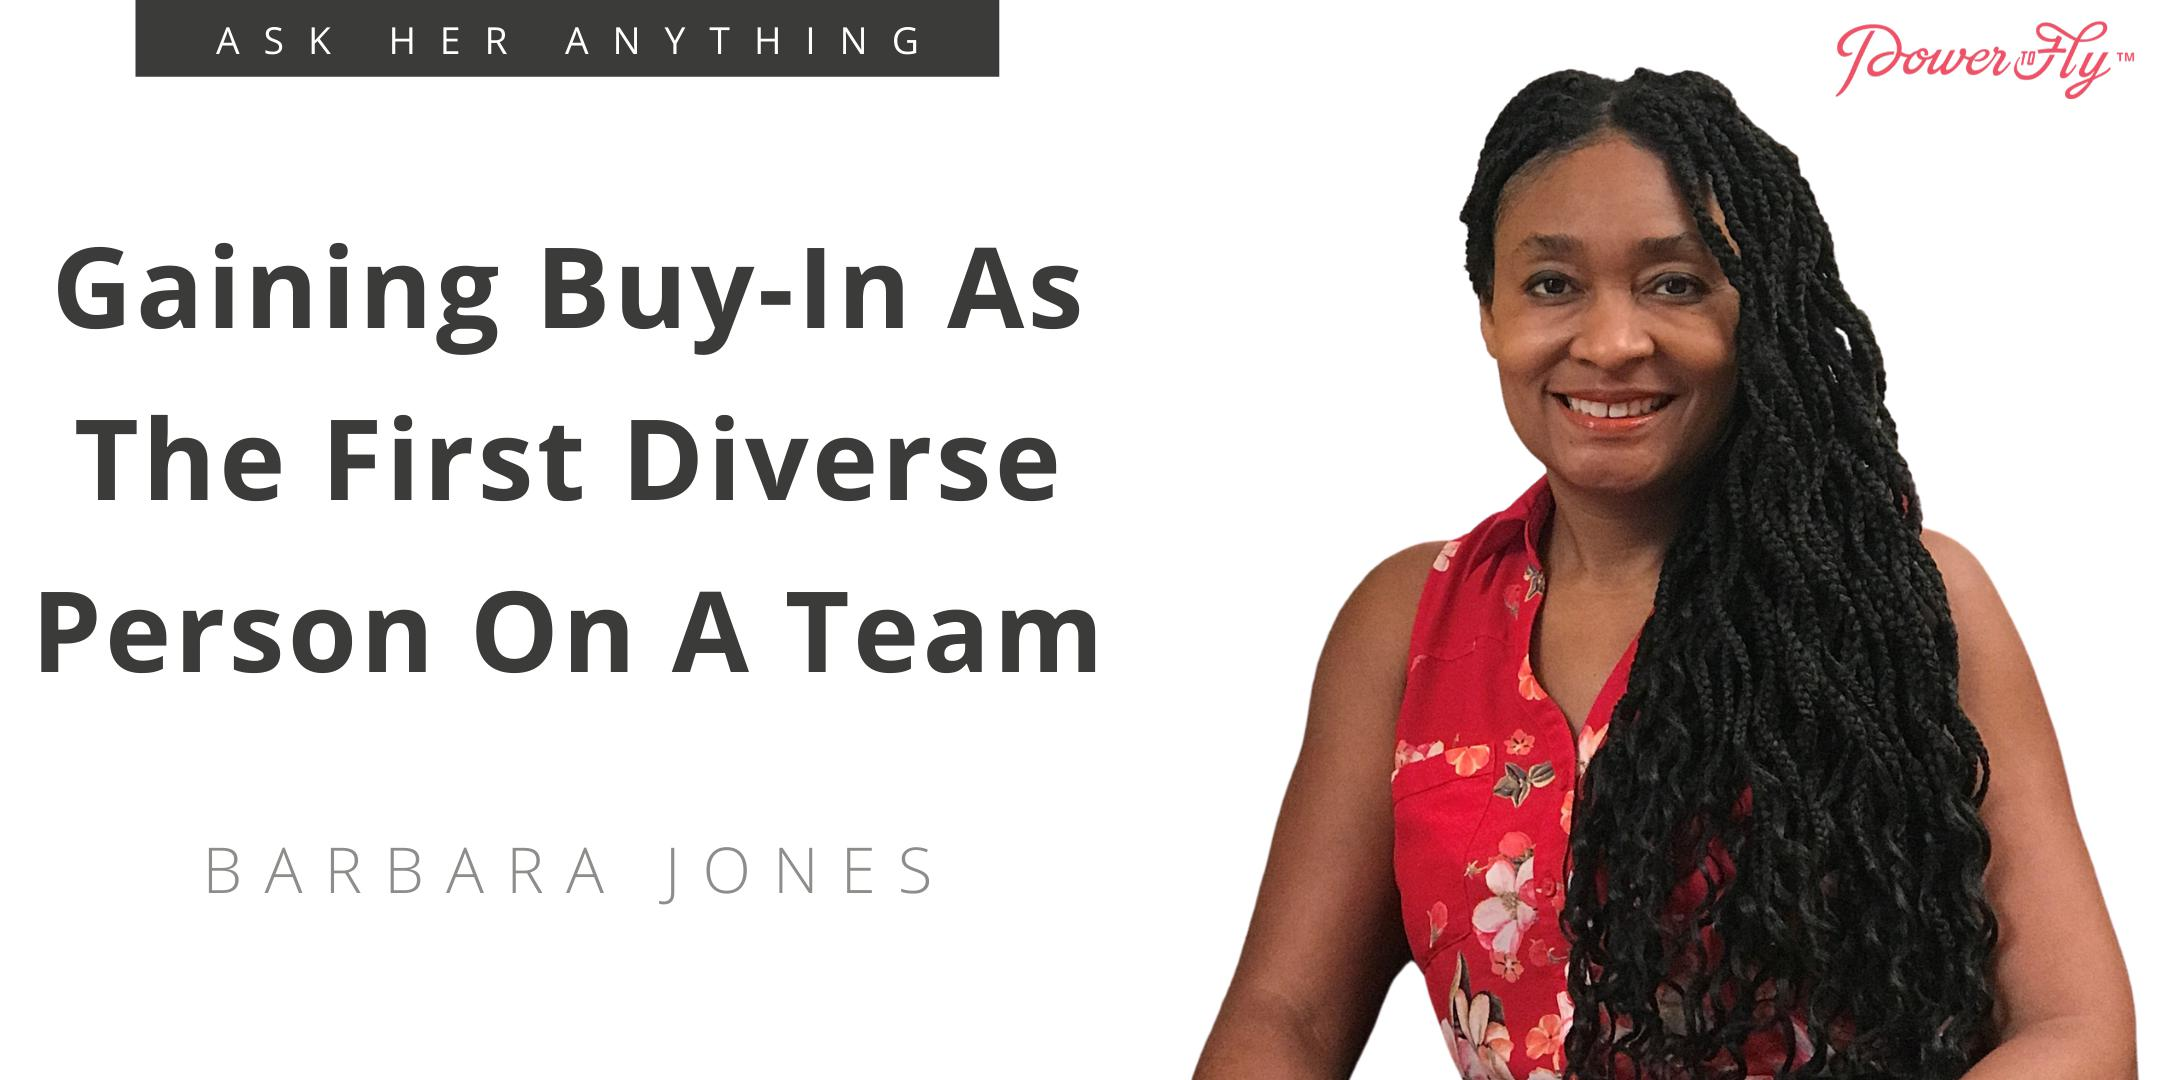 Gaining Buy-In As The First Diverse Person On A Team